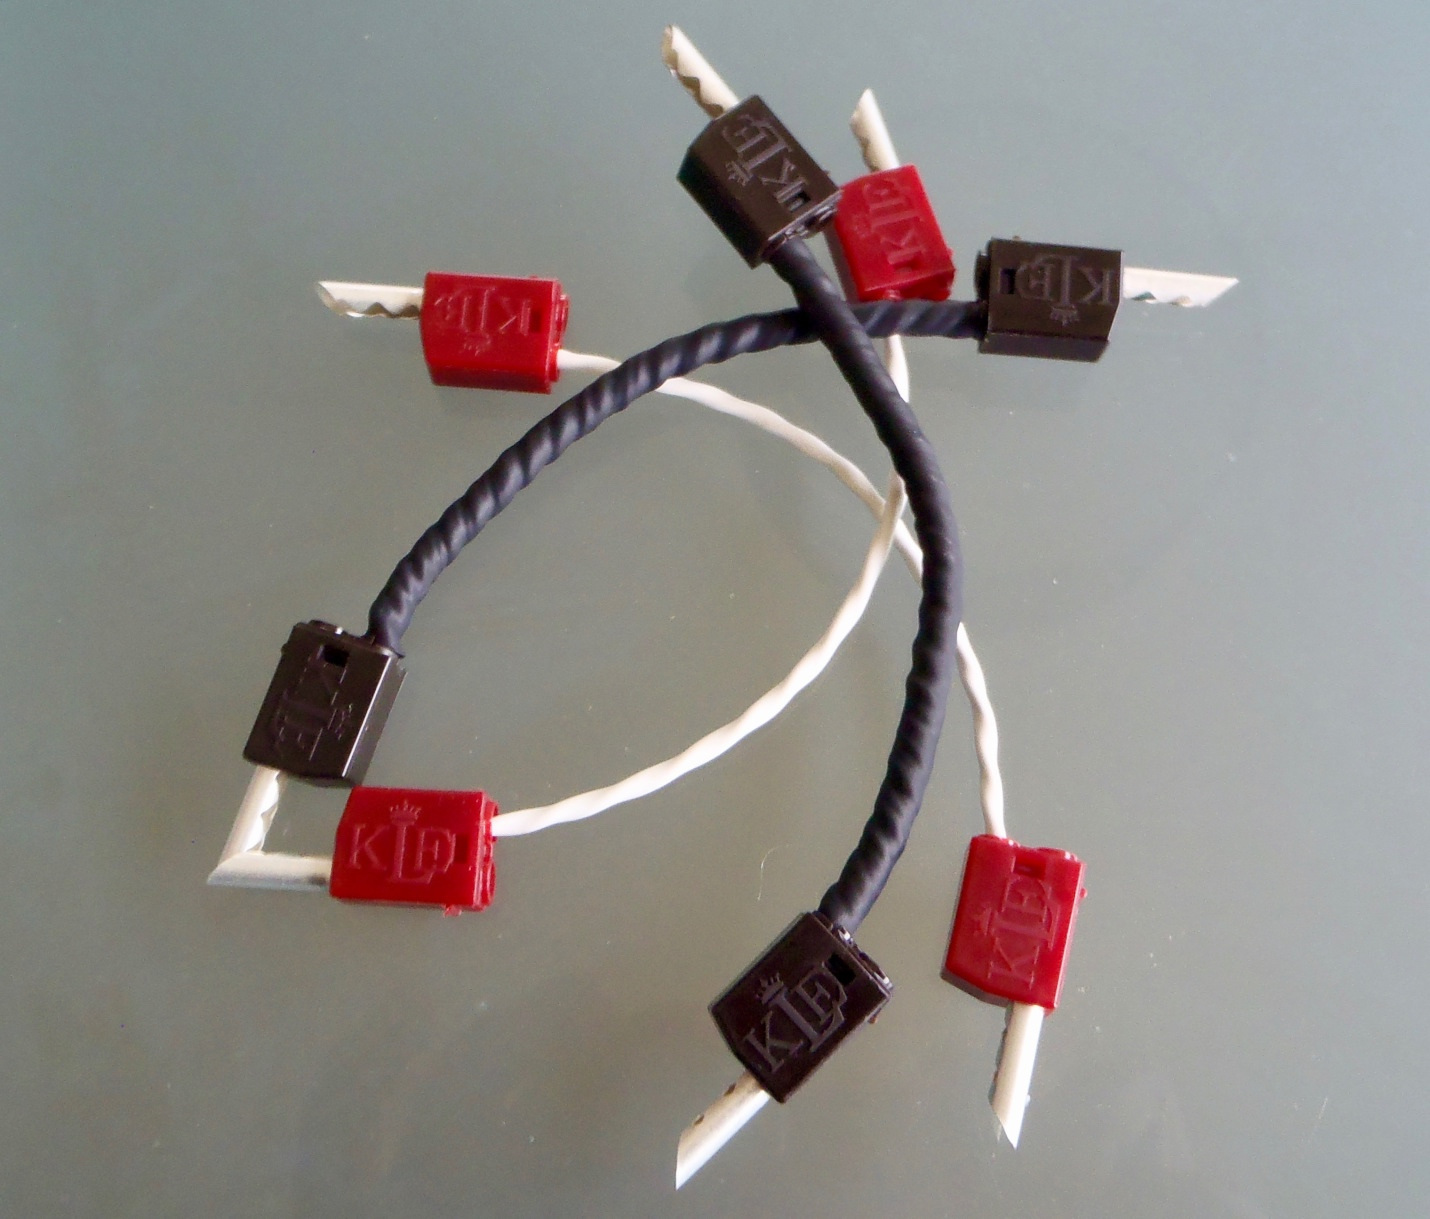 KLEI Speaker Jumper Cables - Totally Wired